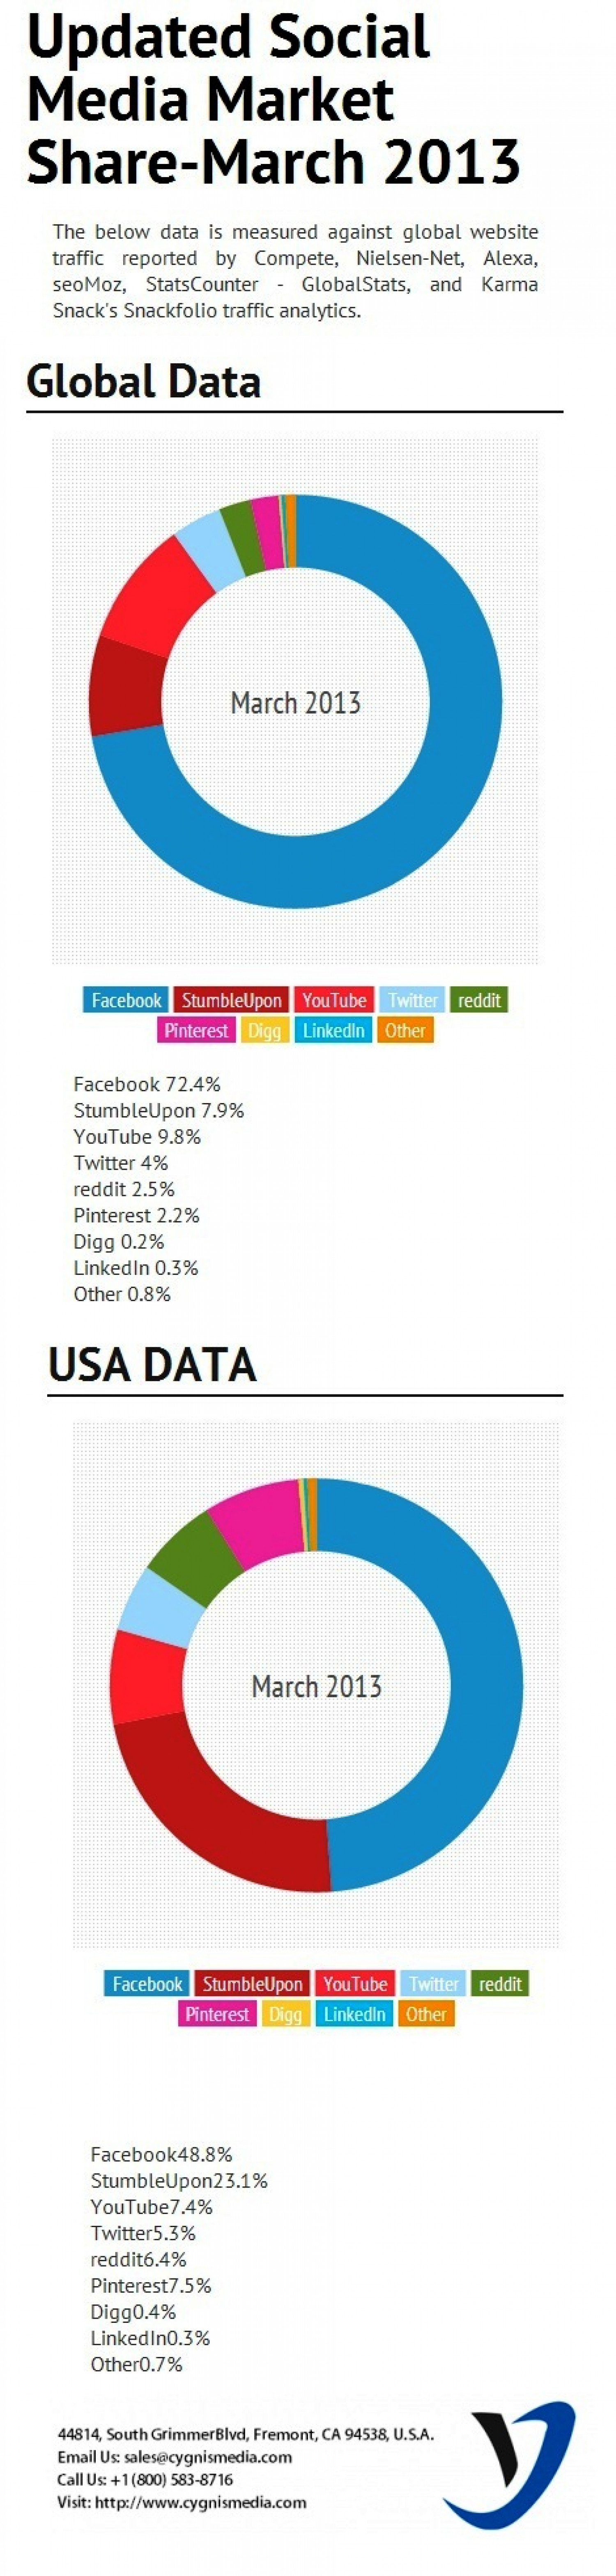 Social Media Market Share 2013 Infographic